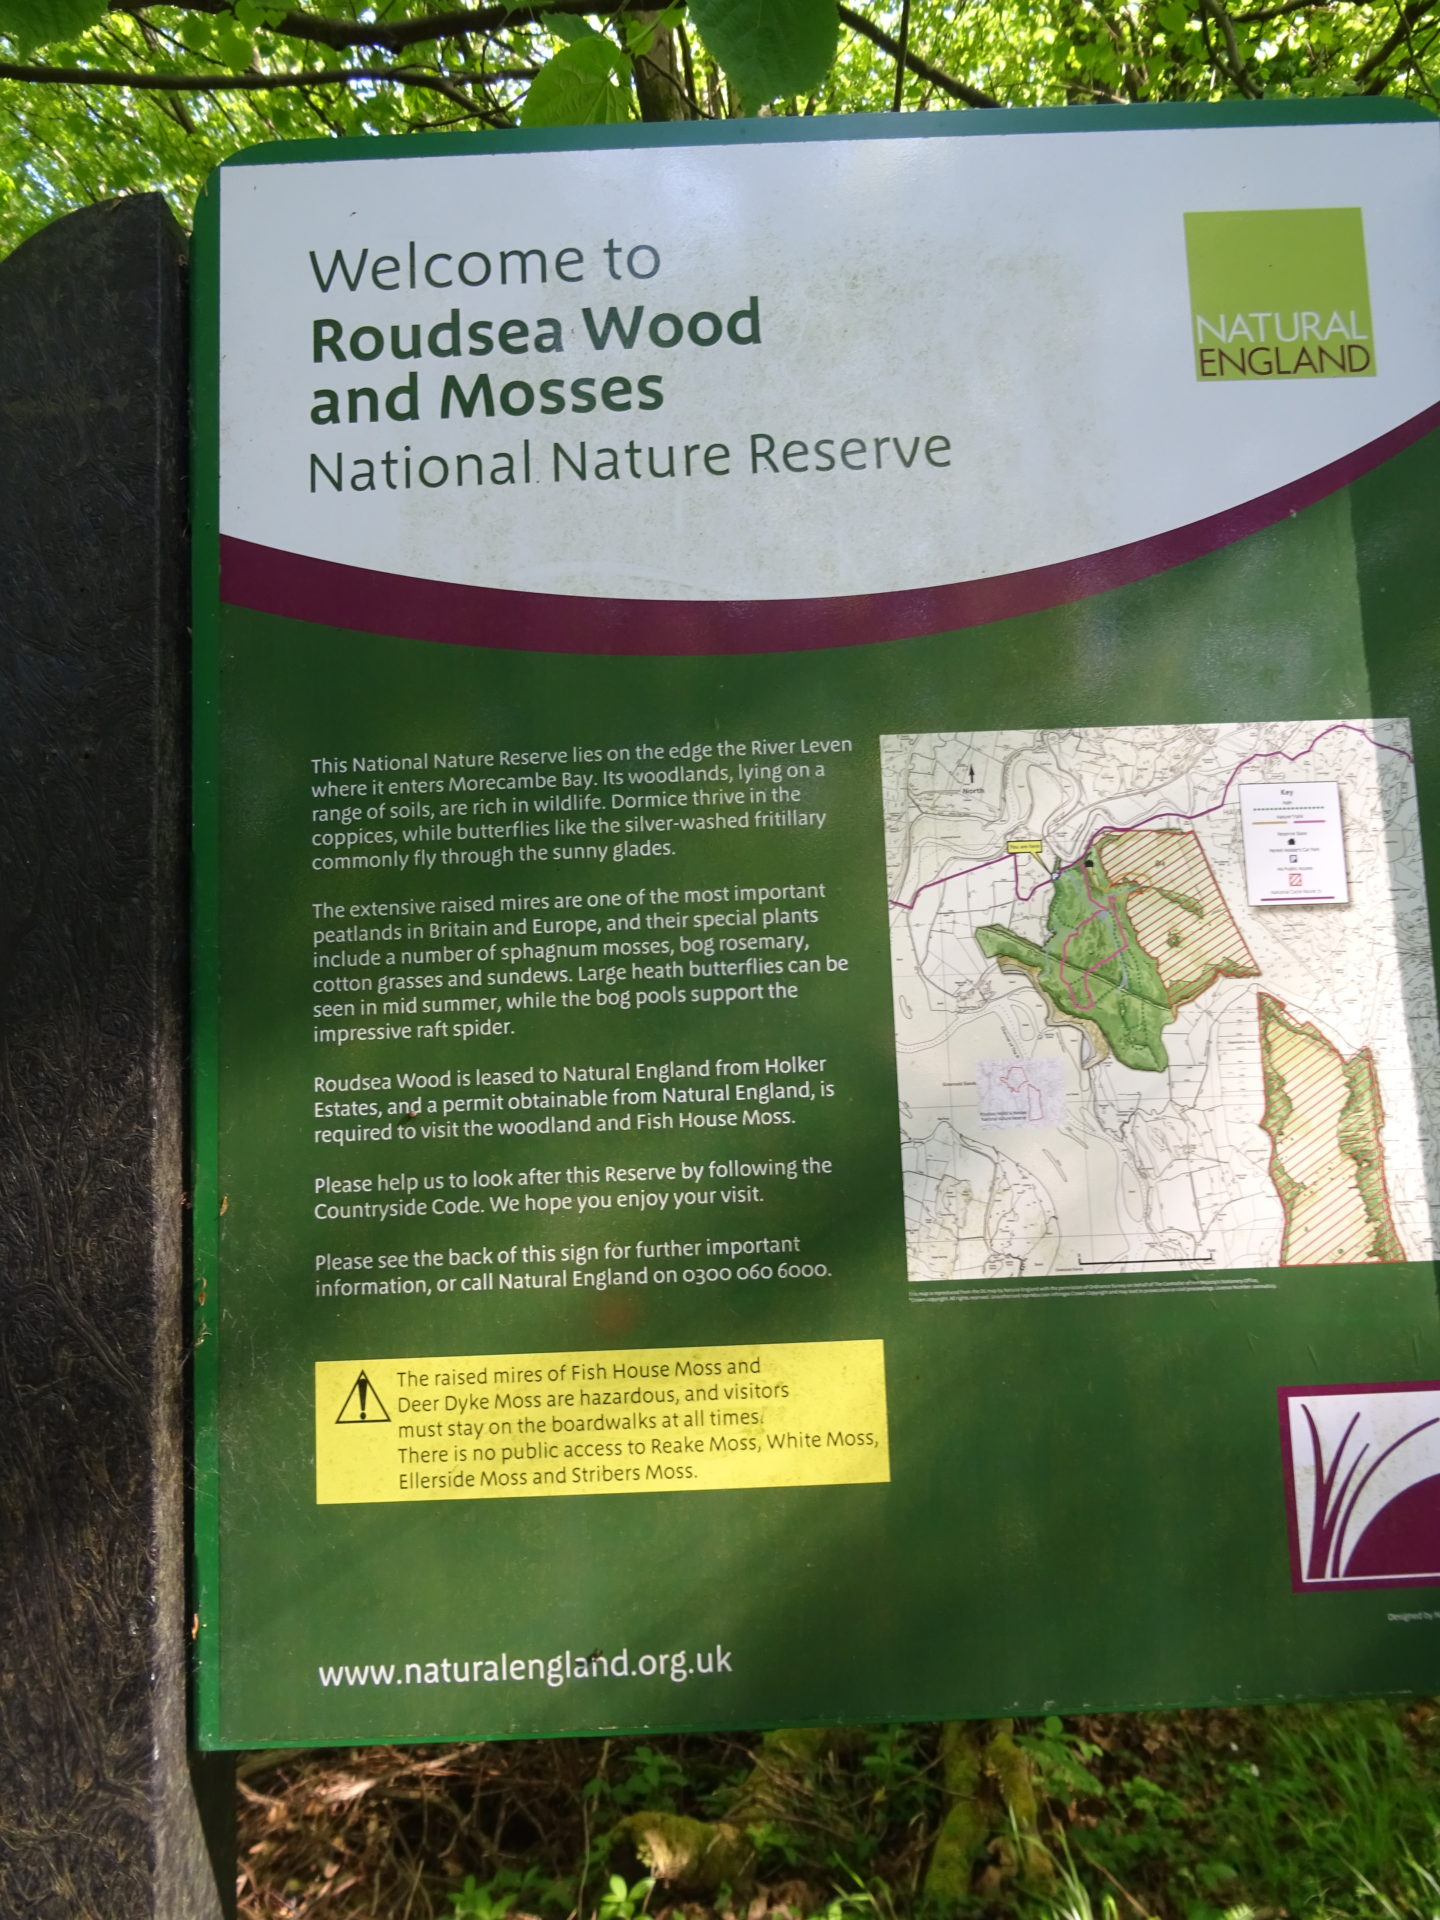 Roudsea Wood and Nature Reserve